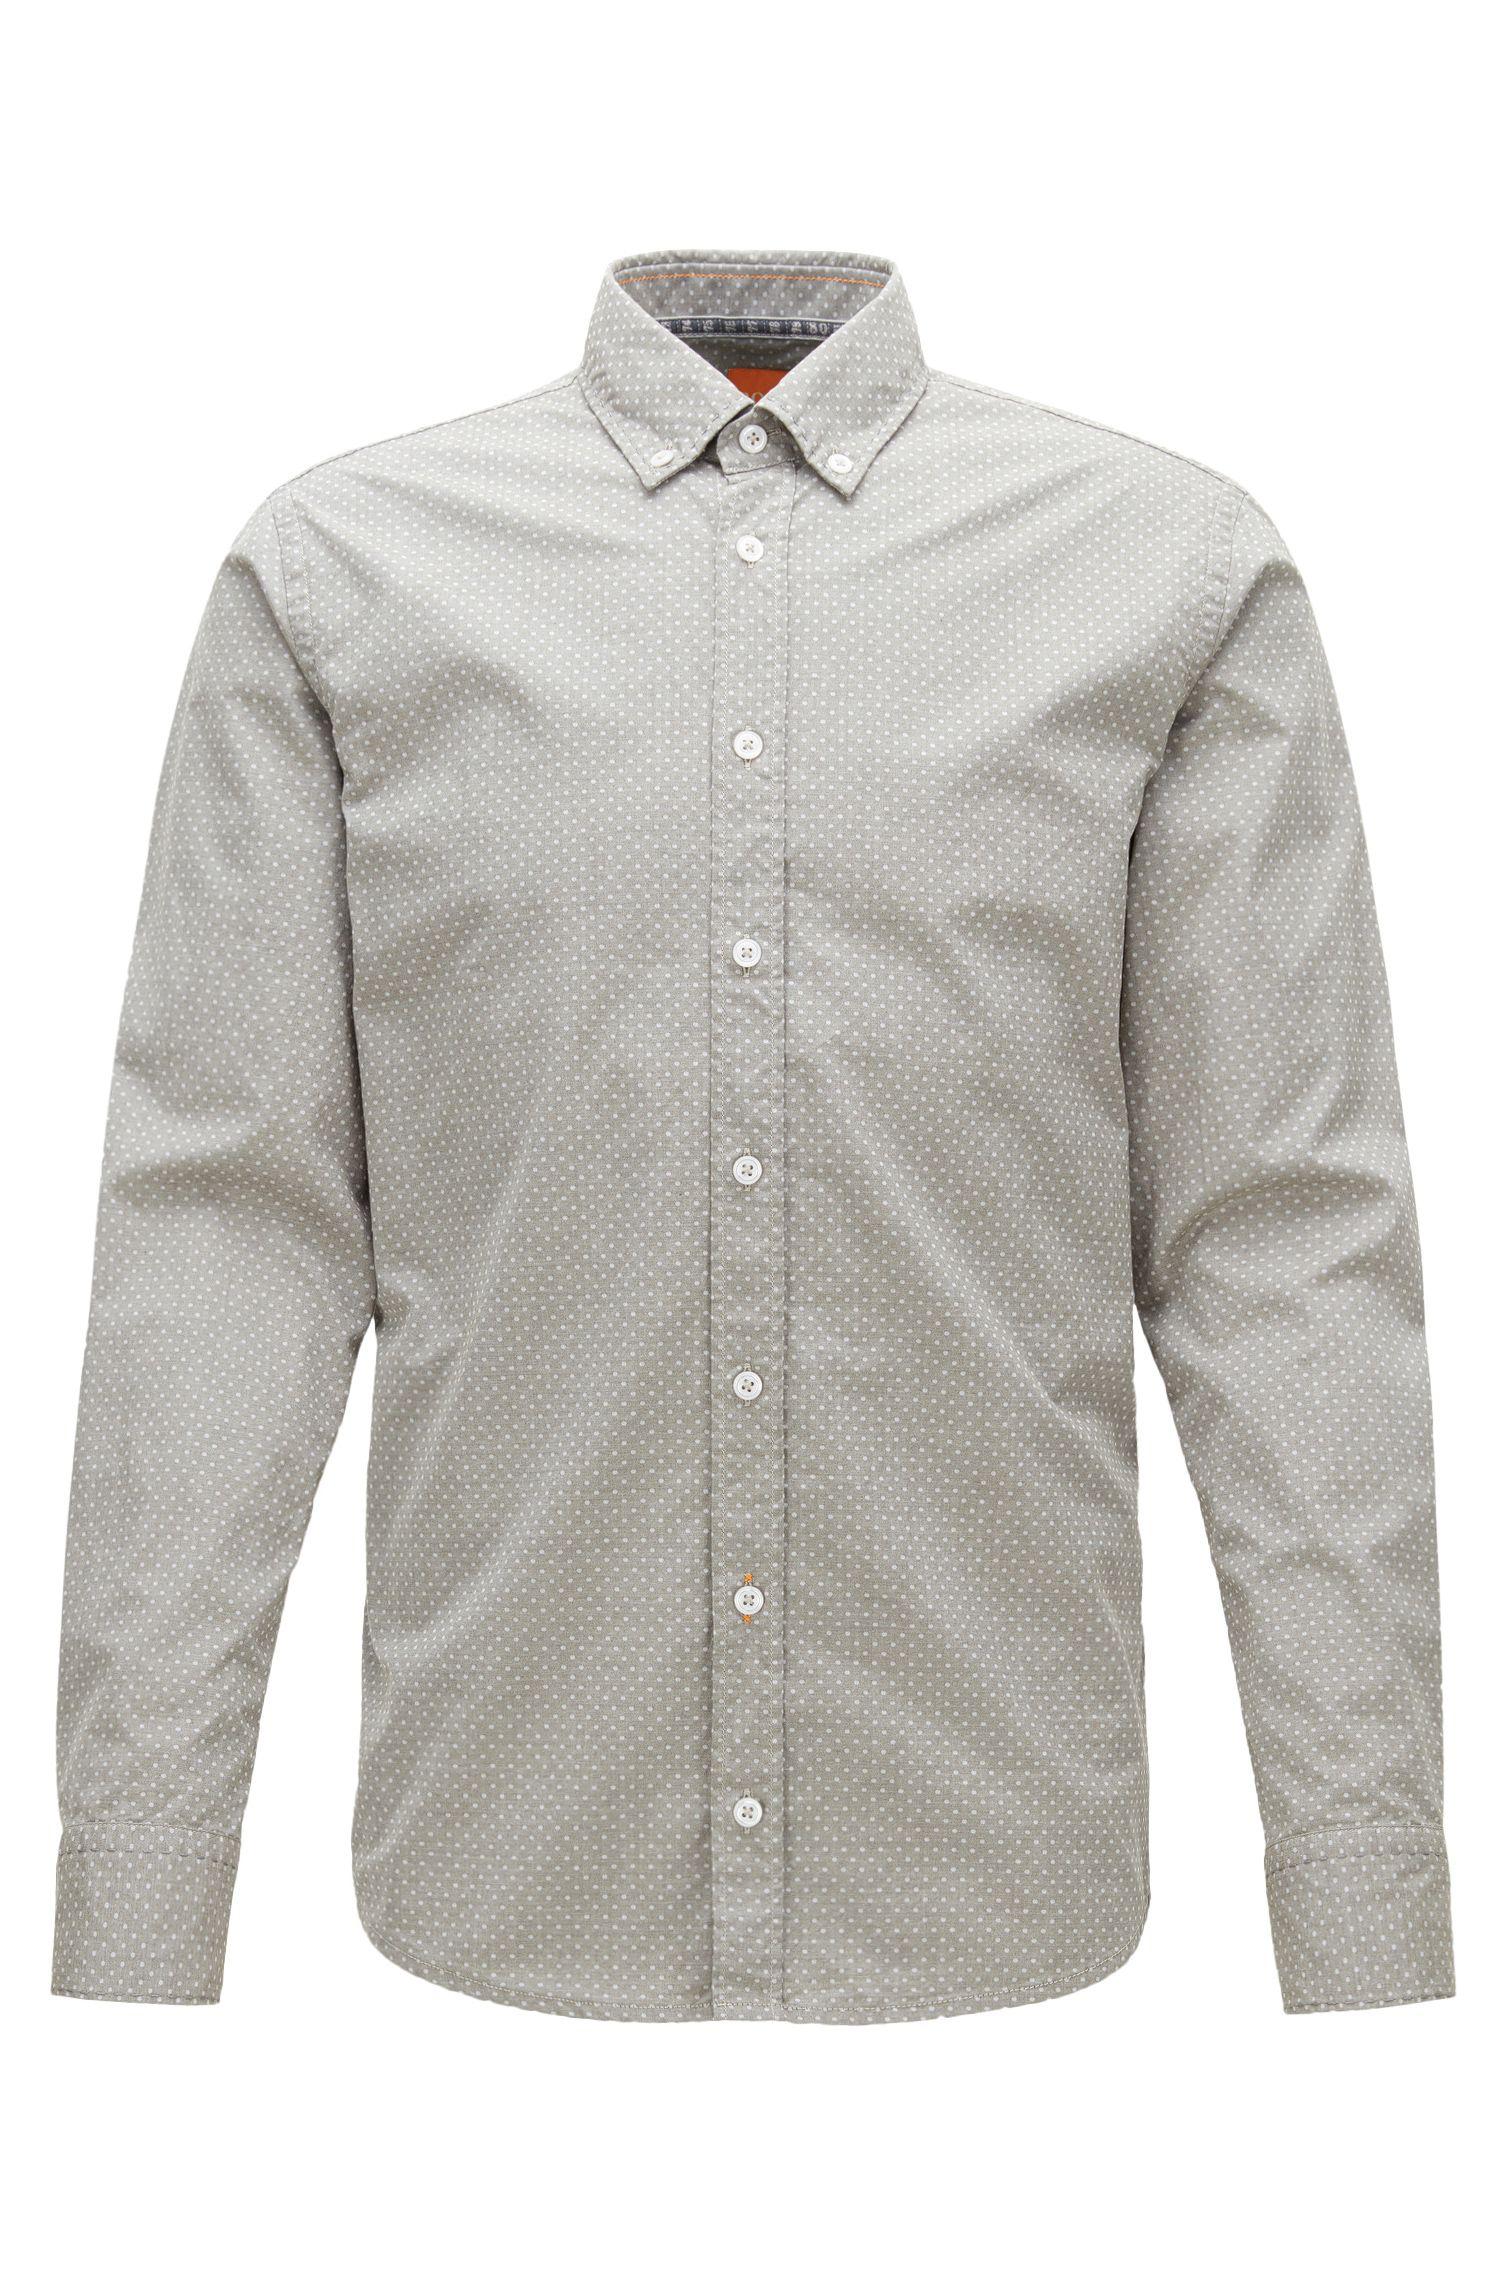 Polka Dot Cotton Button Down Shirt, Slim Fit | Epreppy